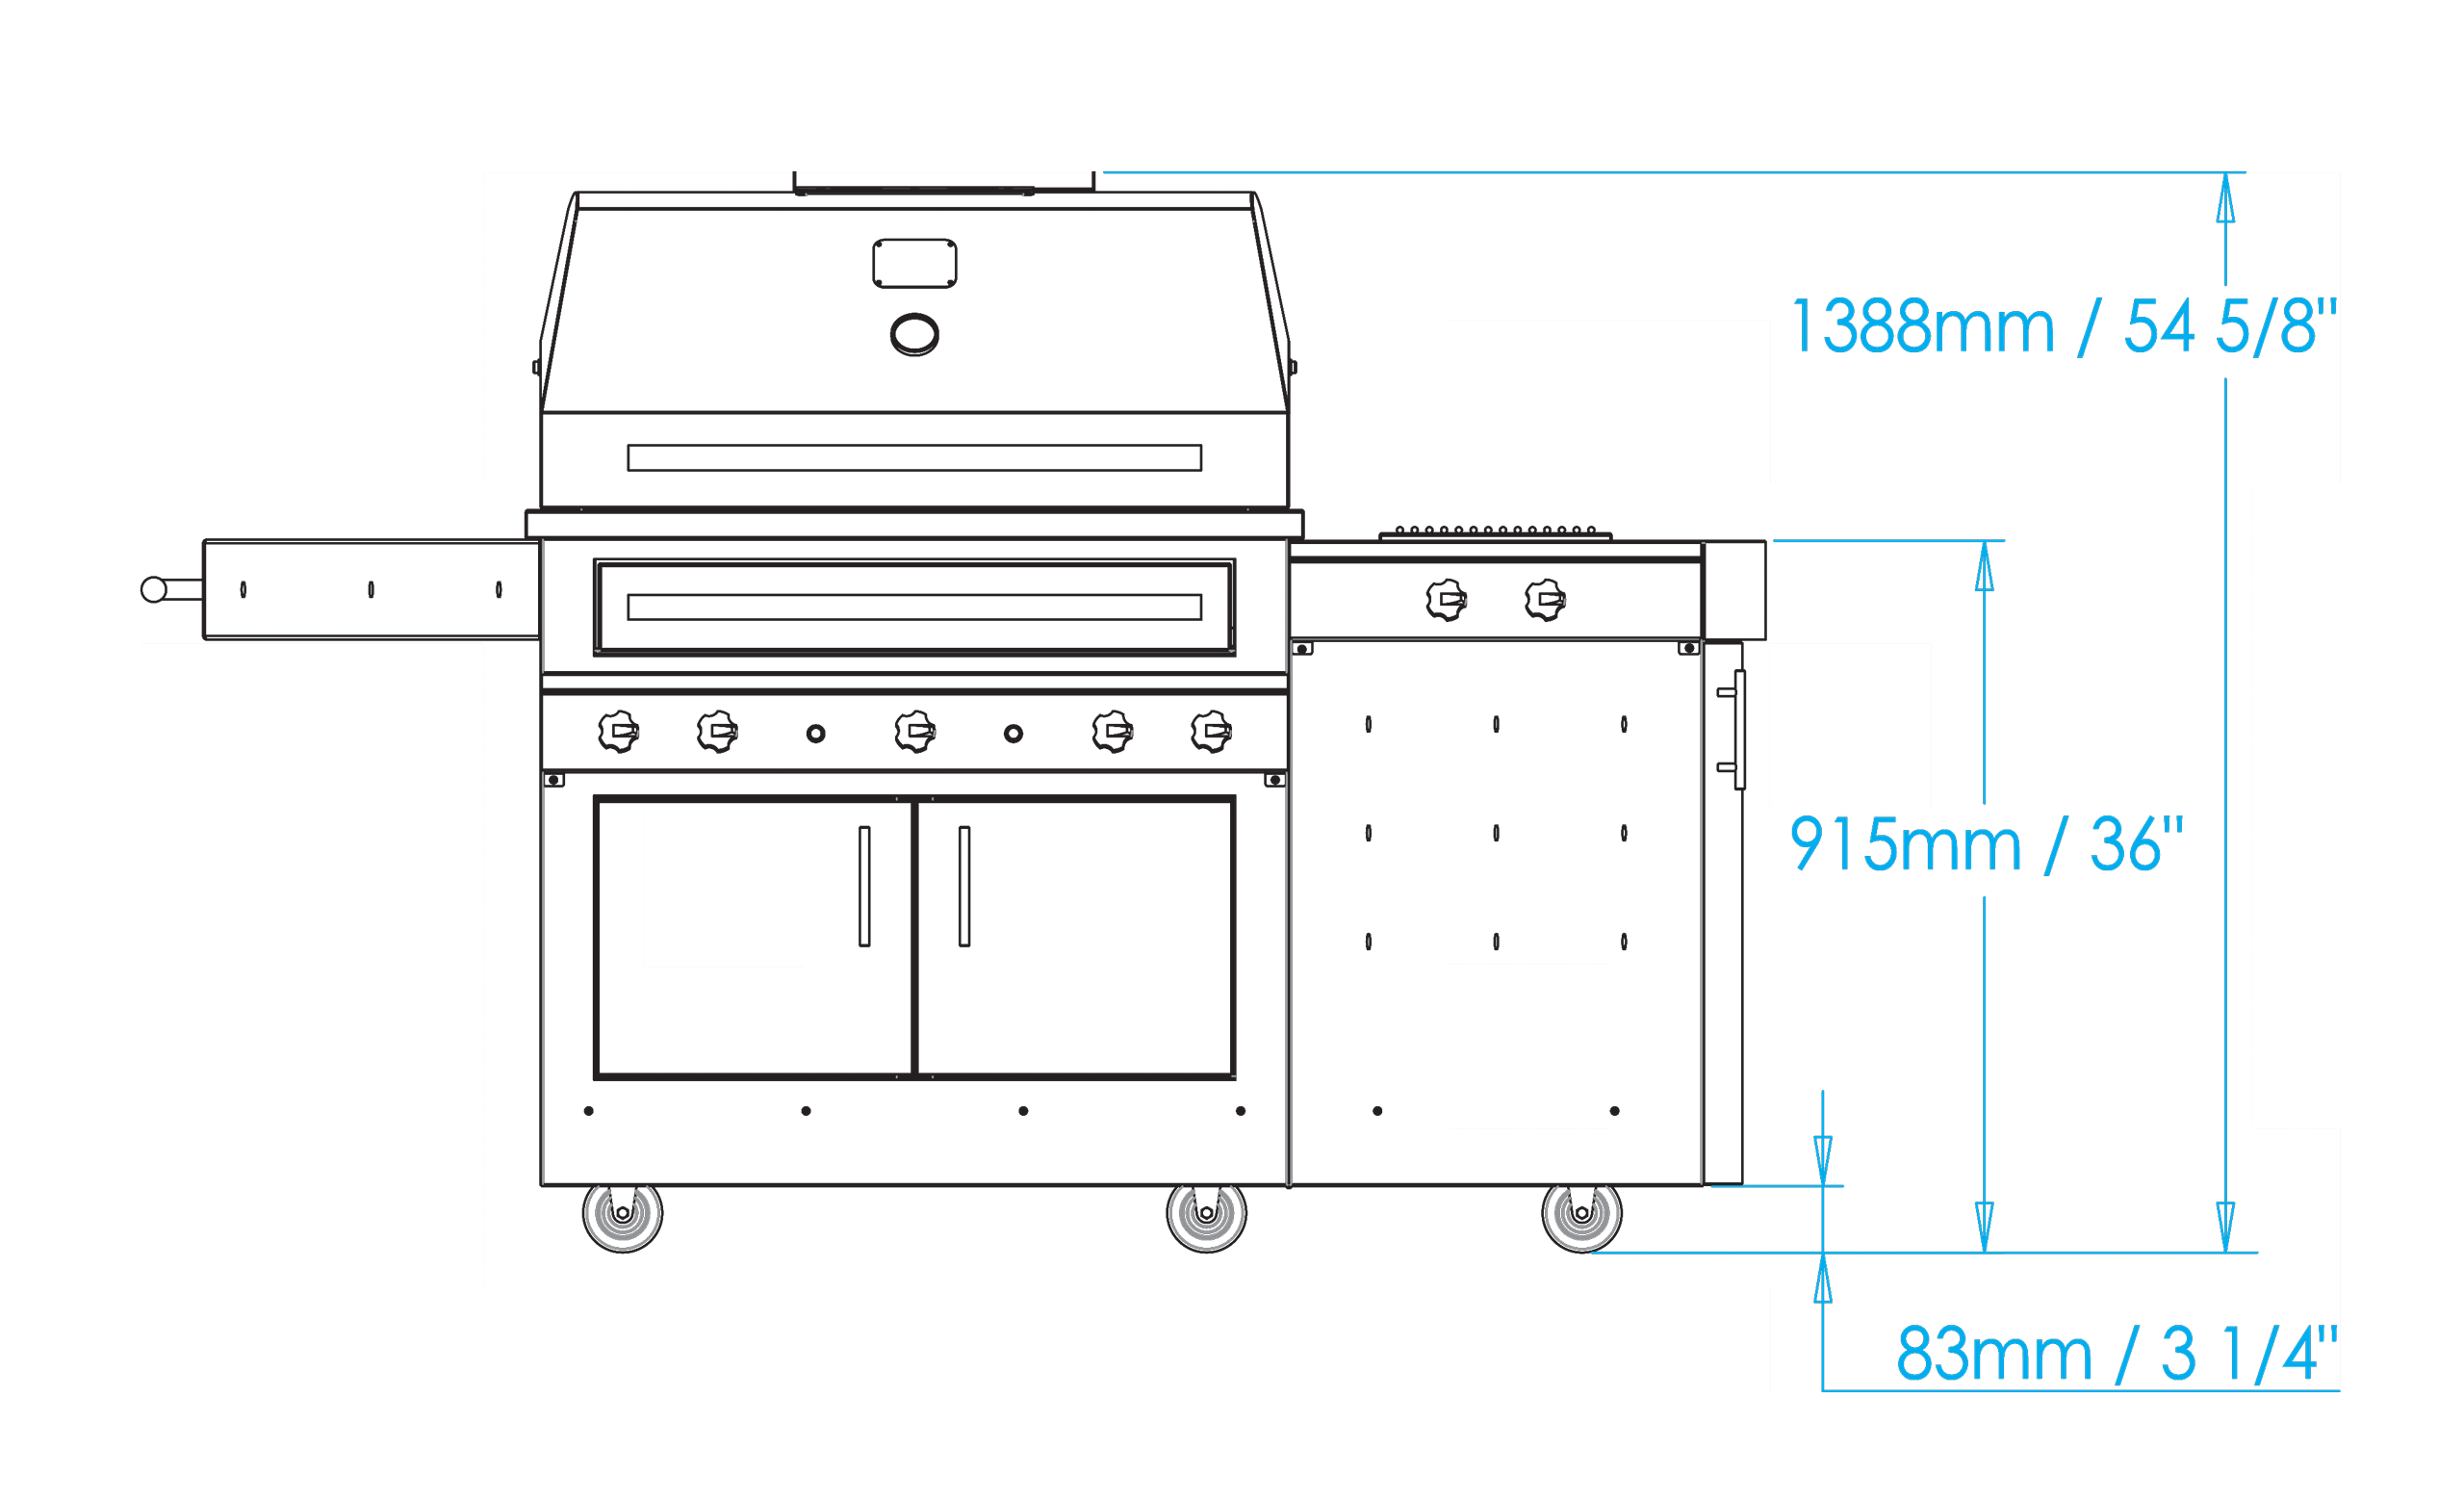 K750 Freestanding Hybrid Fire Grill with Side Burner Dimensions Image